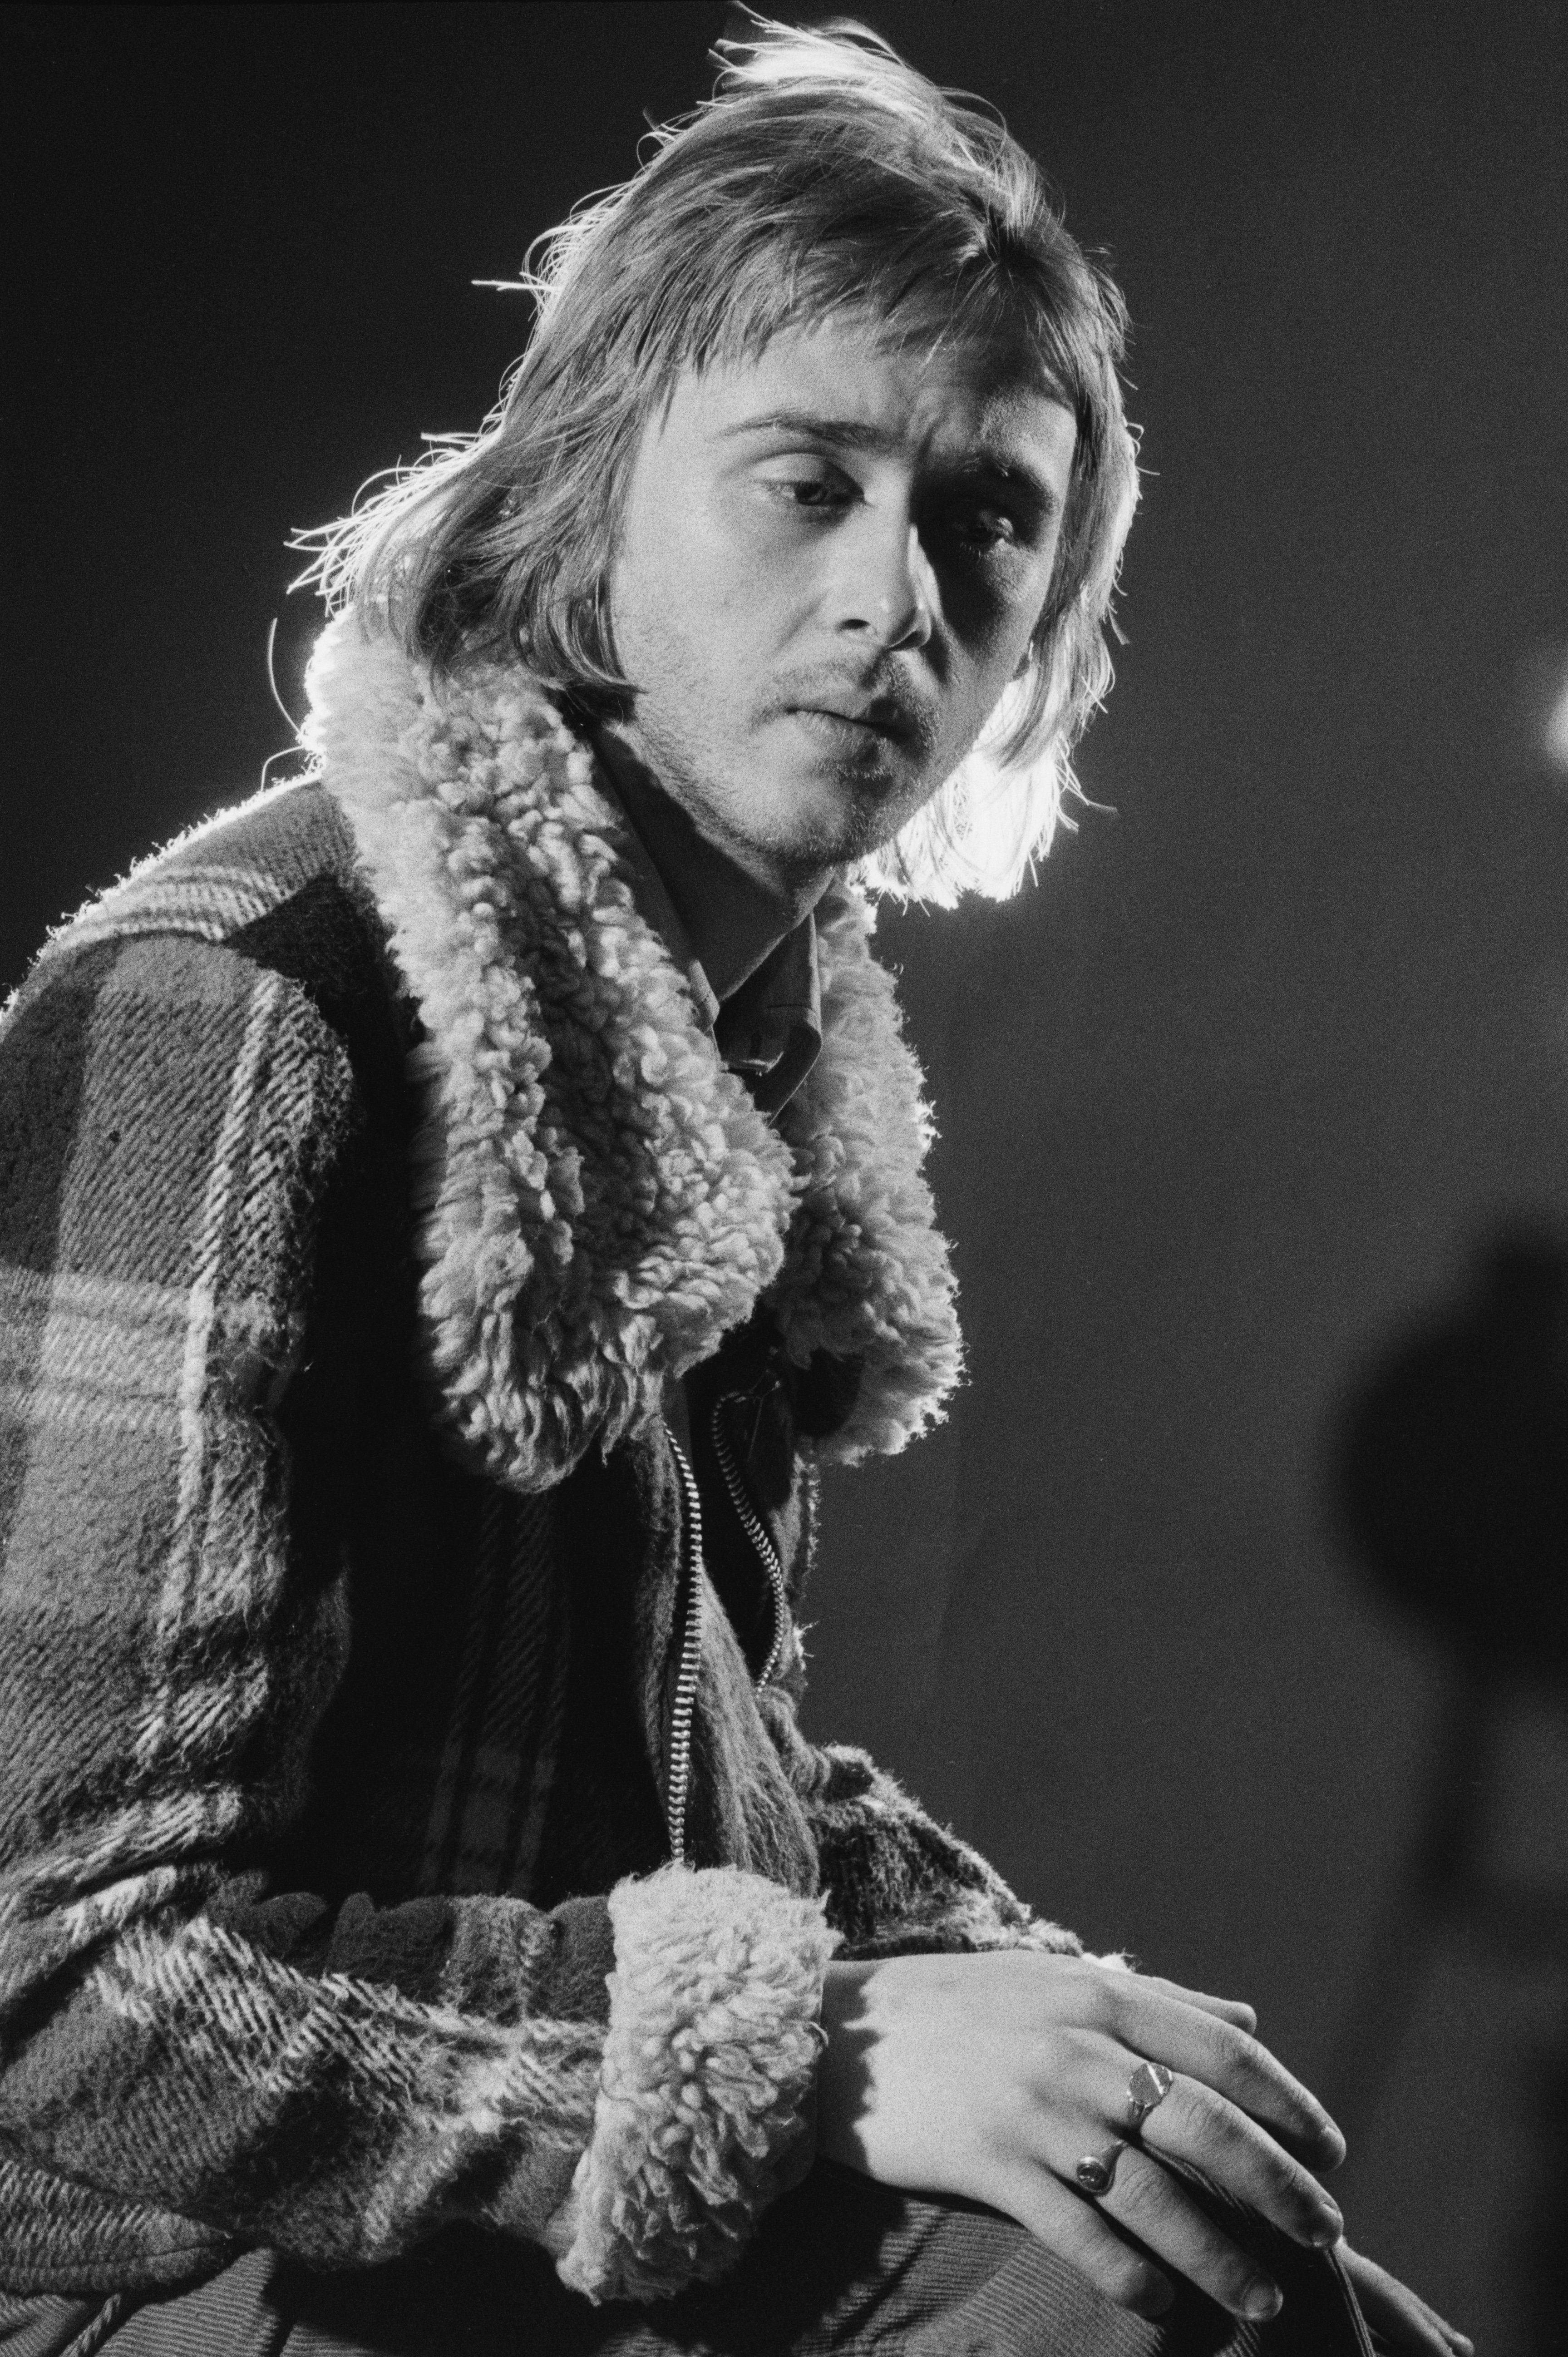 British guitarist, singer and songwriter, Danny Kirwan, formerly of Fleetwood Mac, July 1975. (Photo by Michael Putland/Getty Images)